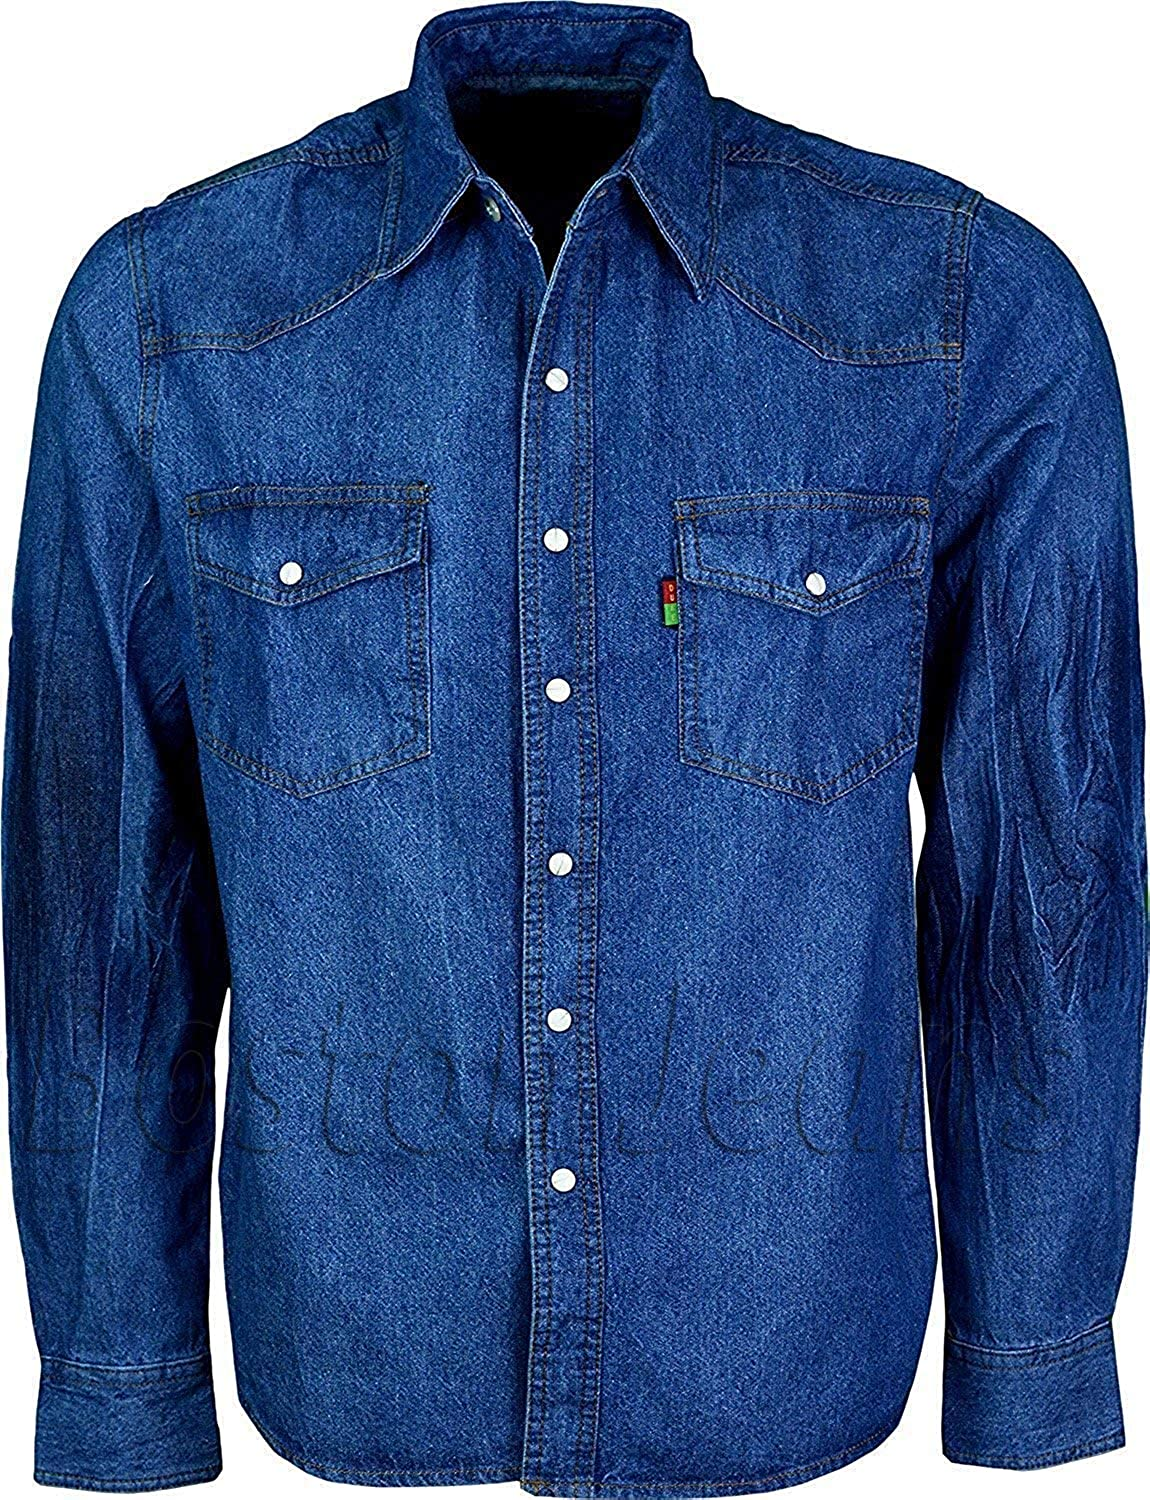 Duke London Hombre Vaquero Prelavado Manga Larga Camionero Camisa Denim